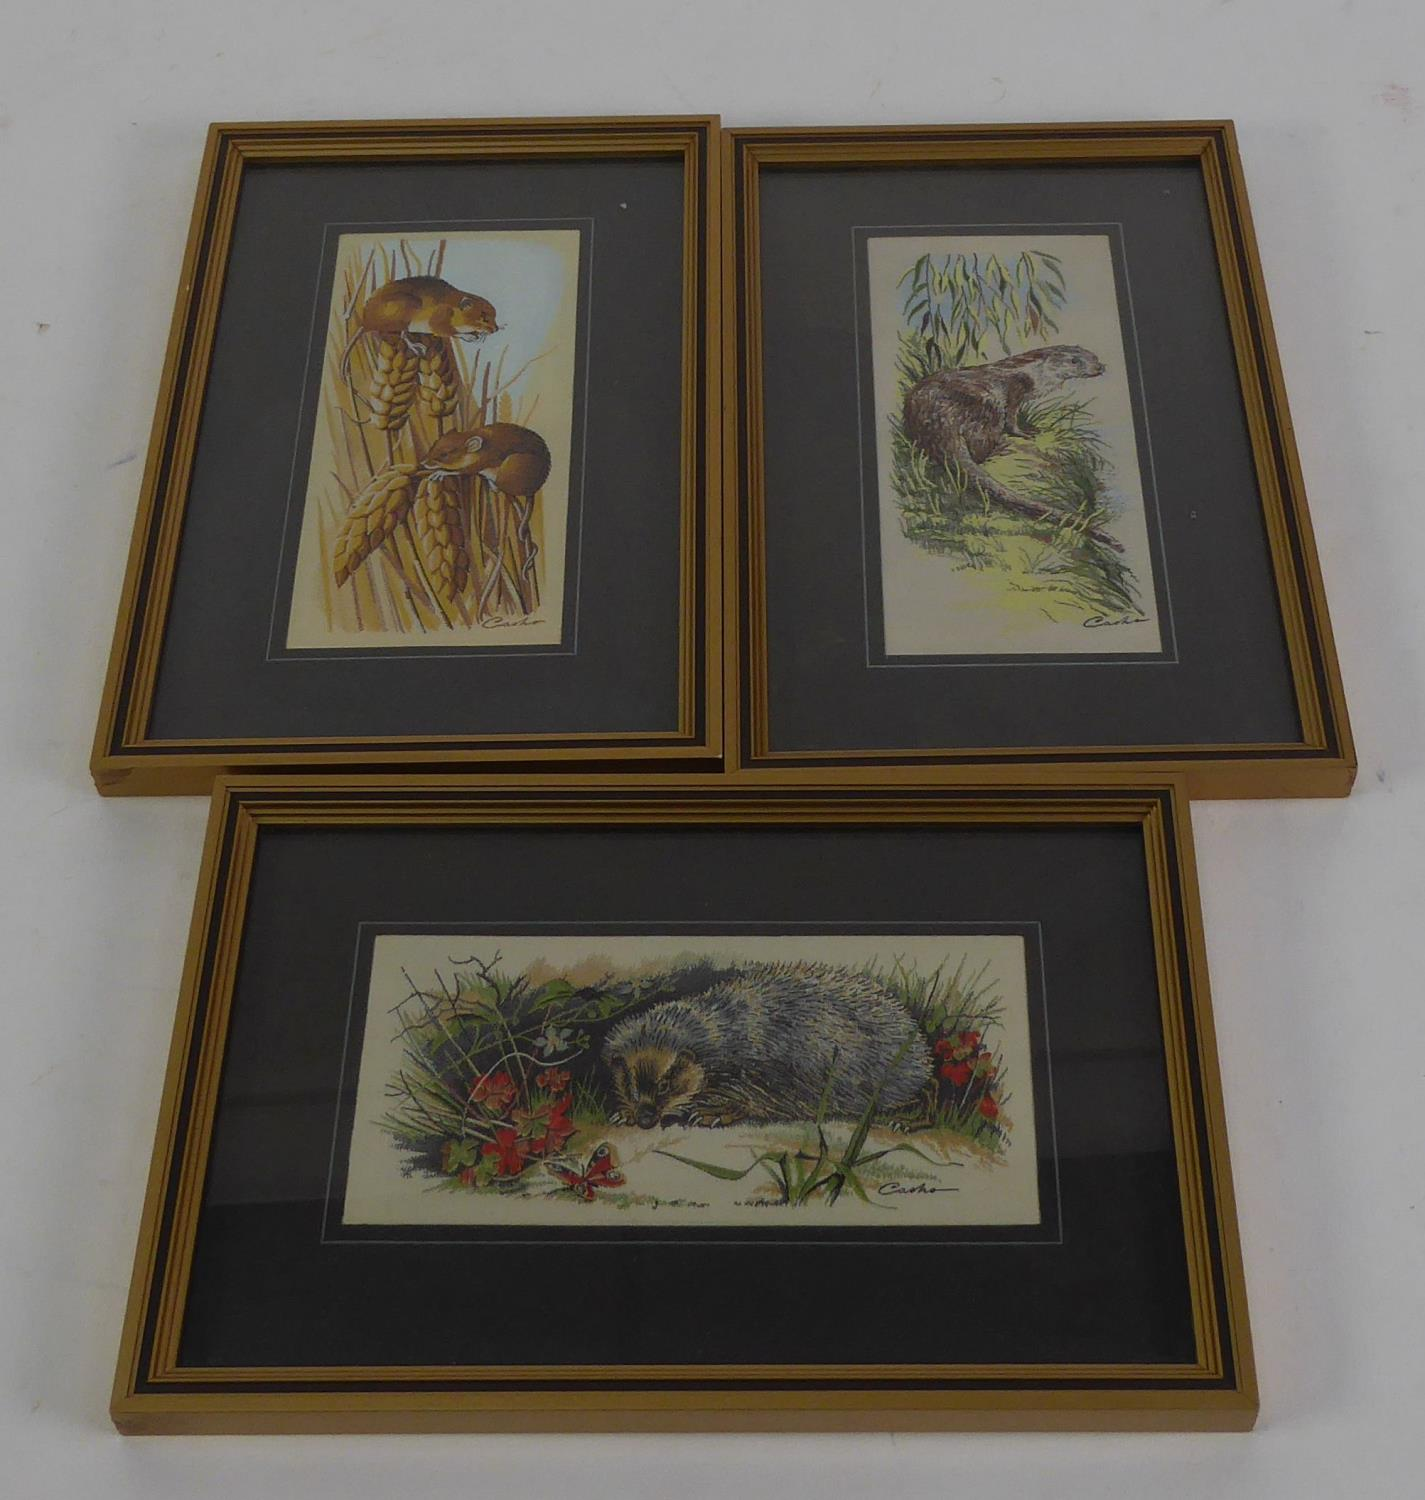 Lot 391 - THREE J. & J. CASH LTD. COVENTRY SILKWORK PICTURES OF ANIMALS IN NATURAL SURROUNDINGS, 'Wildlife